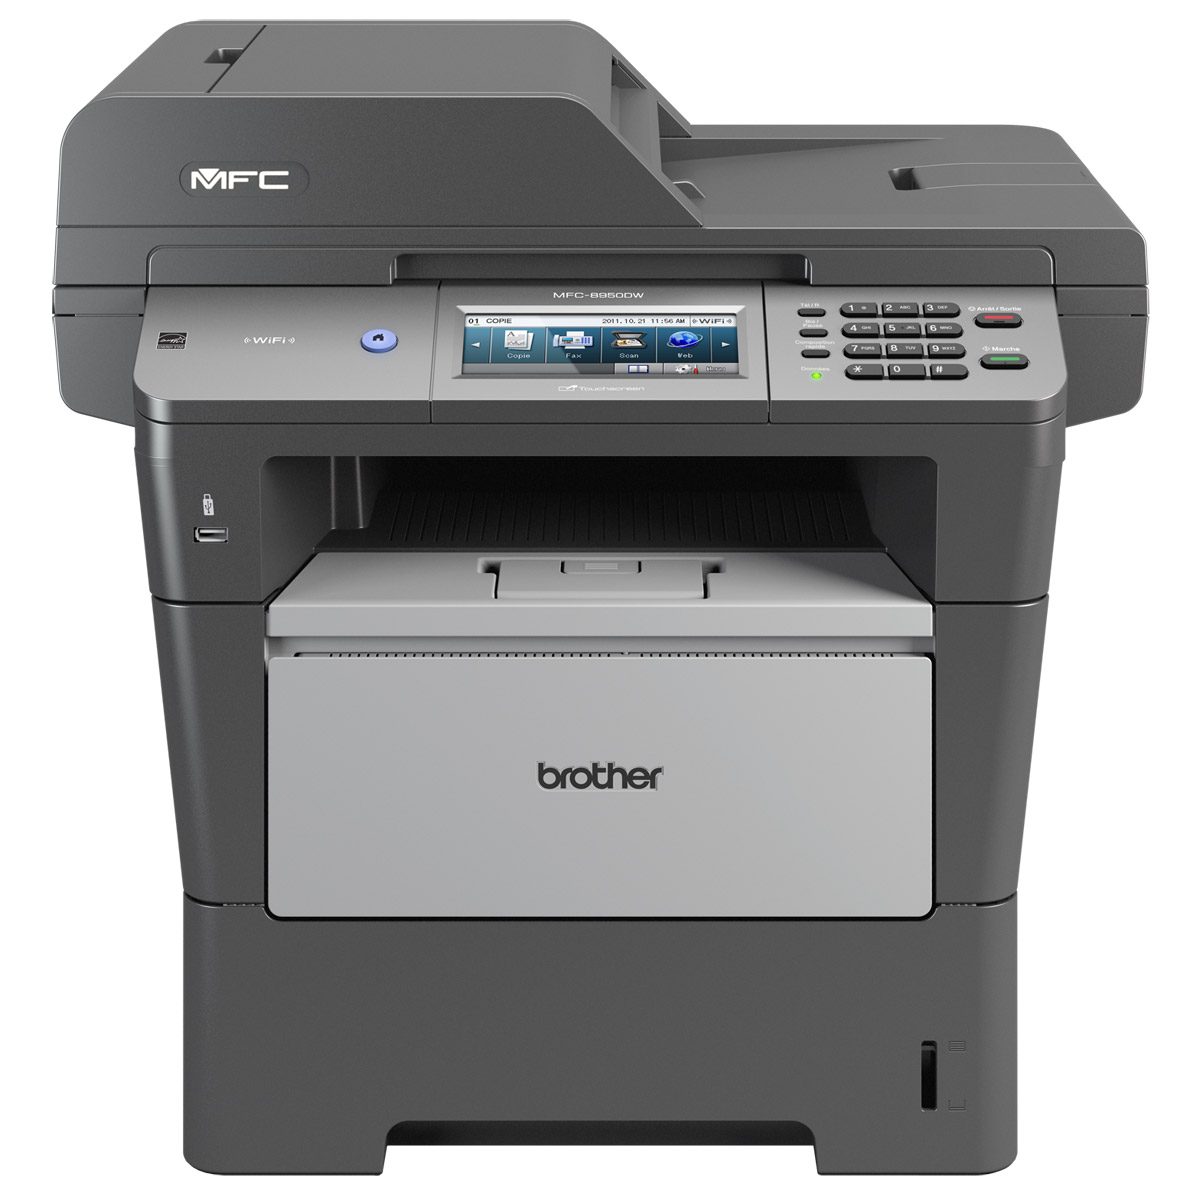 Imprimante multifonction Brother MFC-8950DW Imprimante Multifonction laser monochrome 4-en-1 (USB 2.0/Ethernet/Wi-Fi b/g/n)